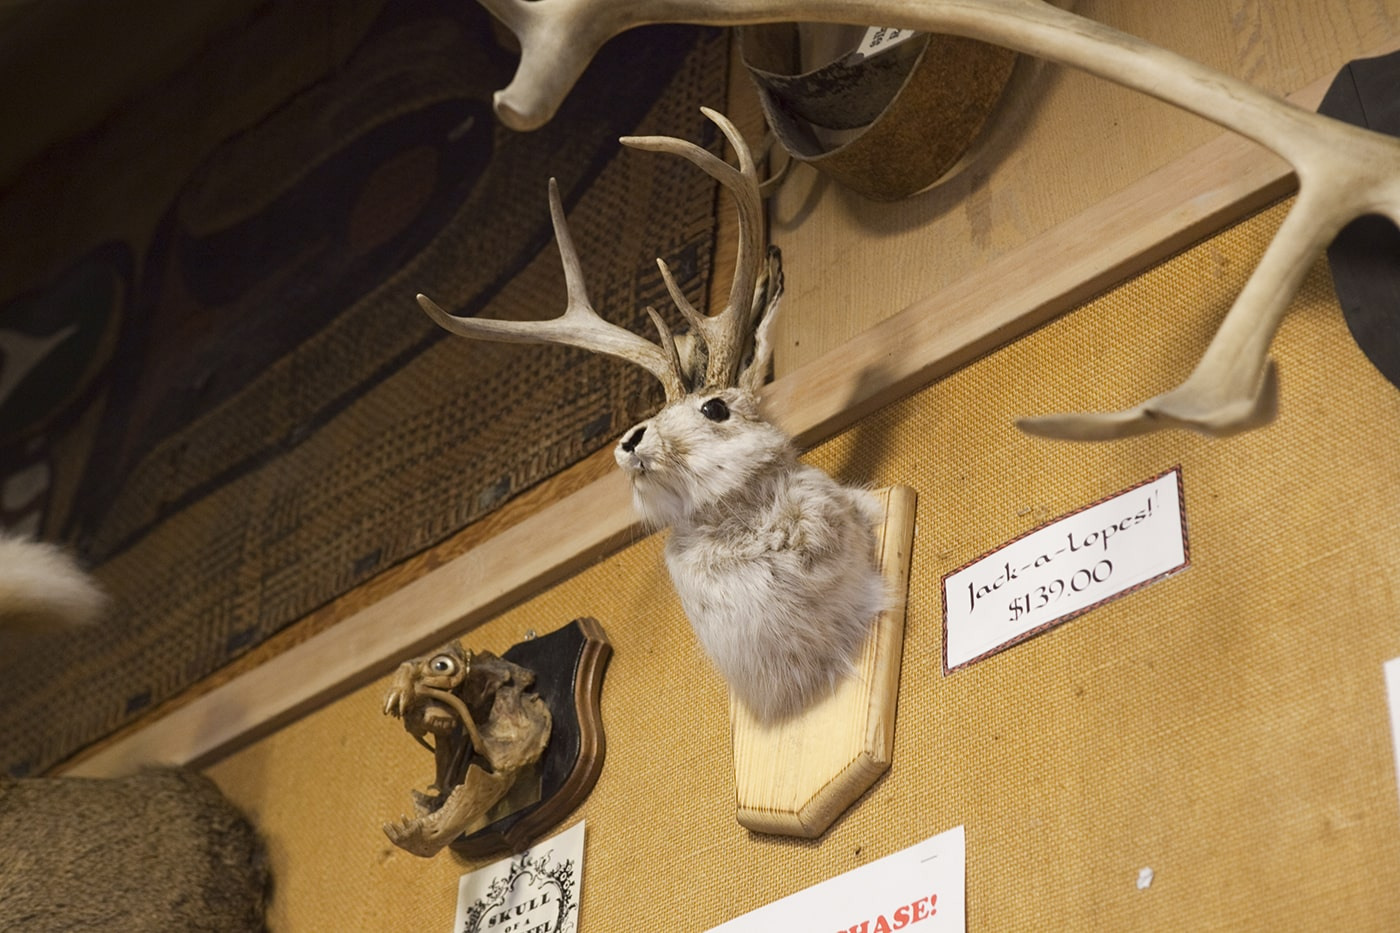 Jackalope at Ye Olde Curiosity Shoppe in Seattle, Washington